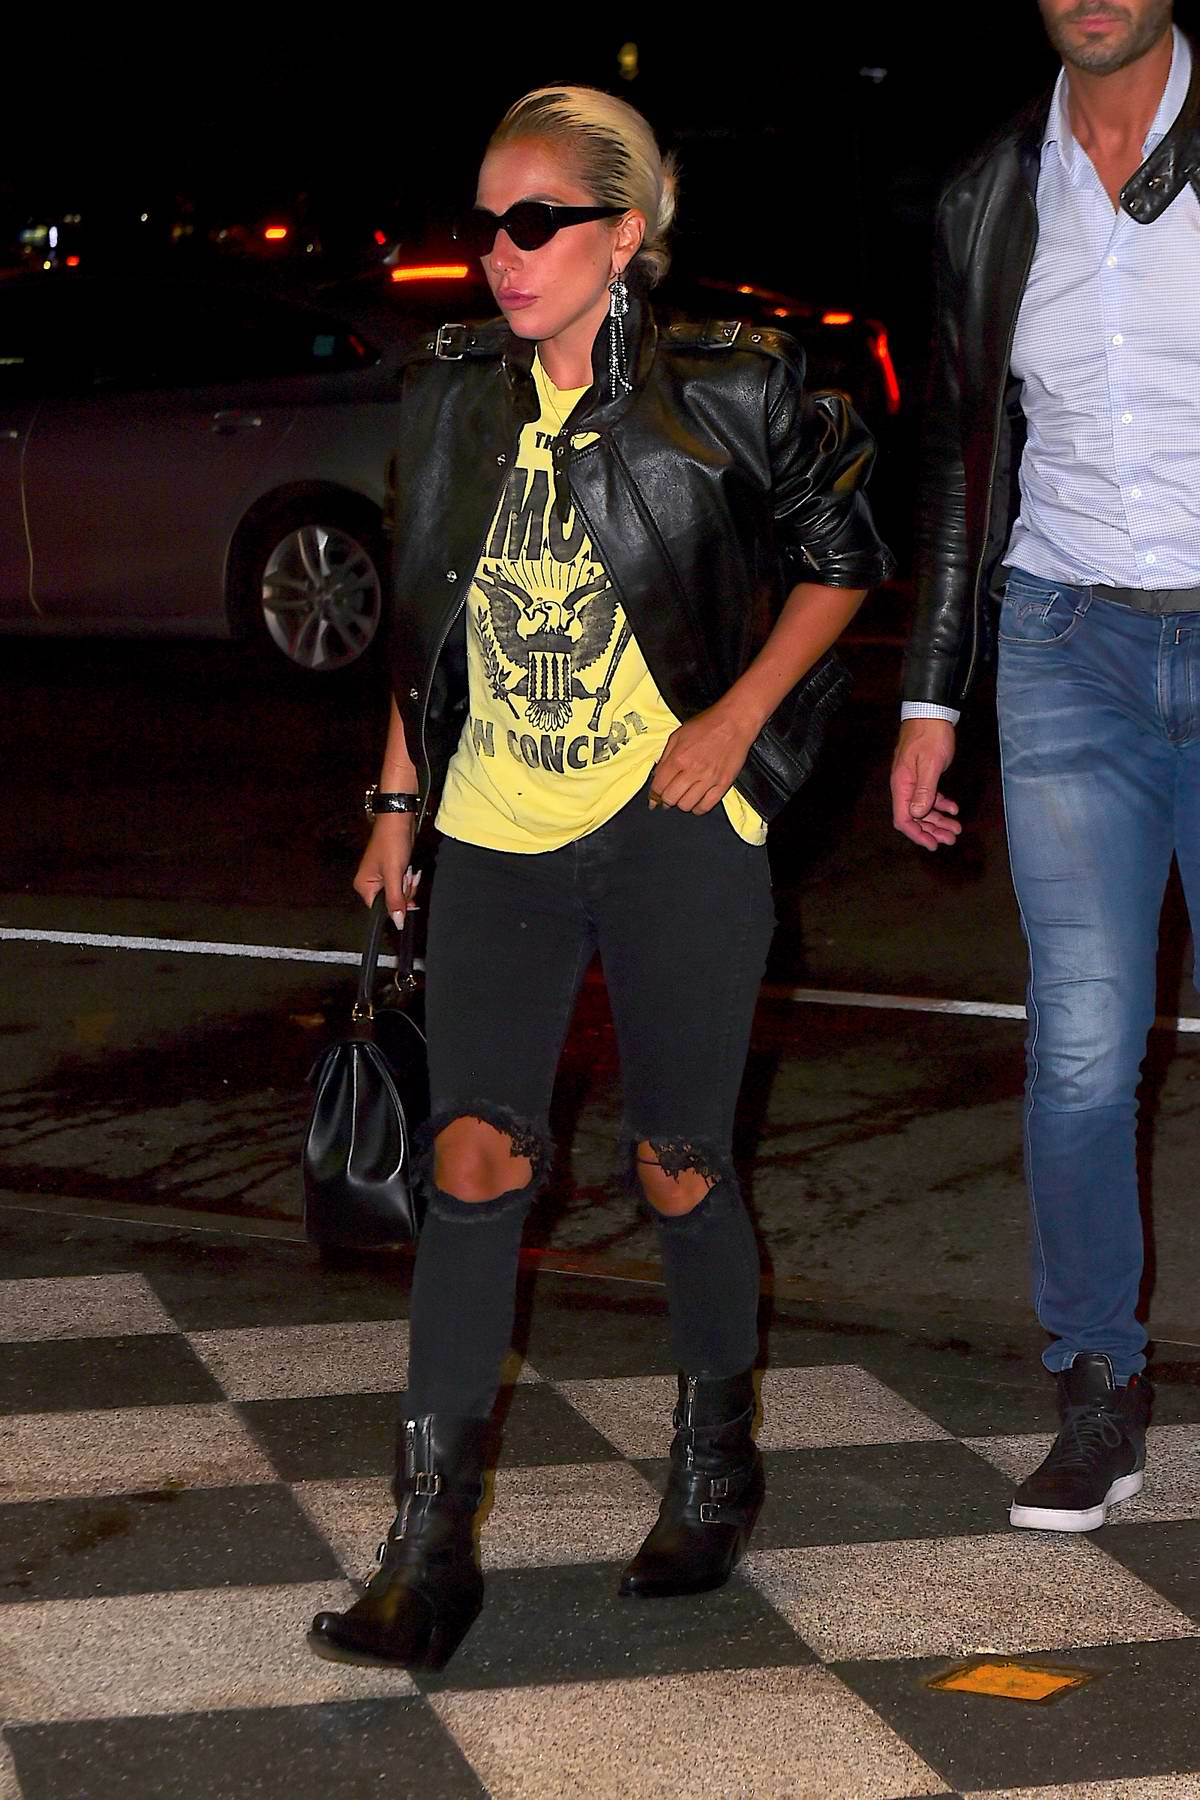 Lady Gaga rocks a vintage tee and leather jacket as she steps out in New York City